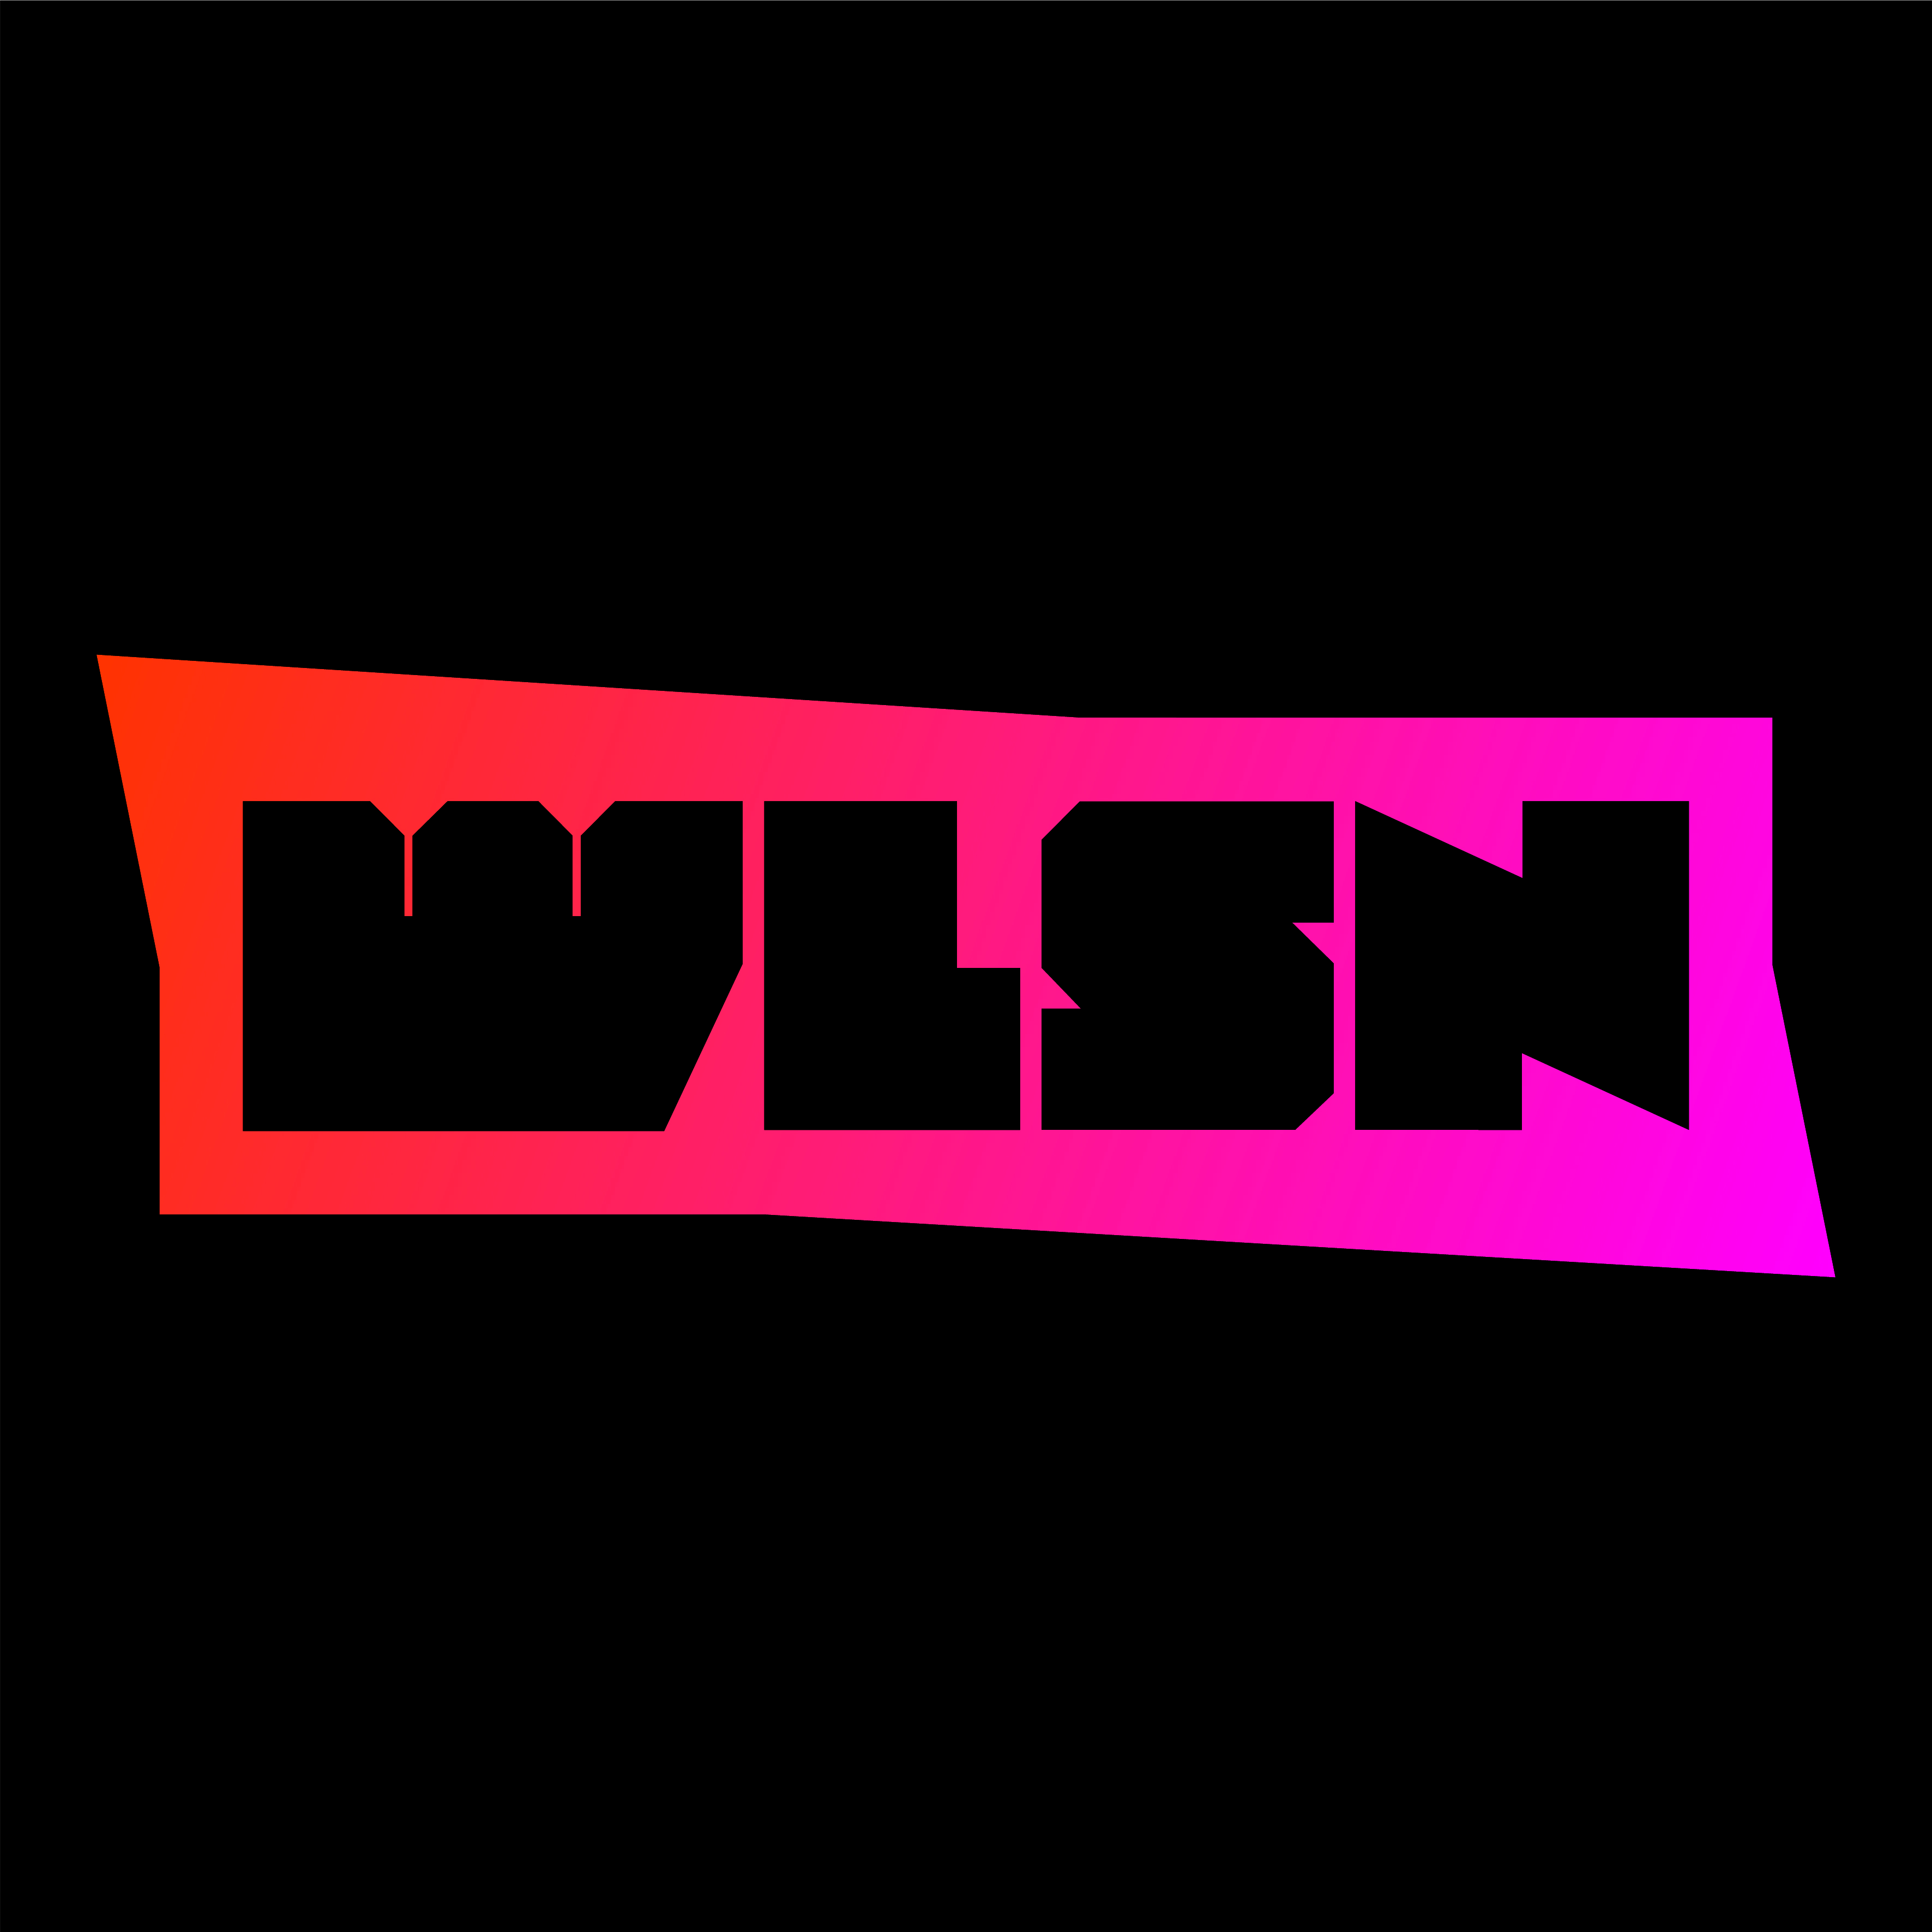 WLSN